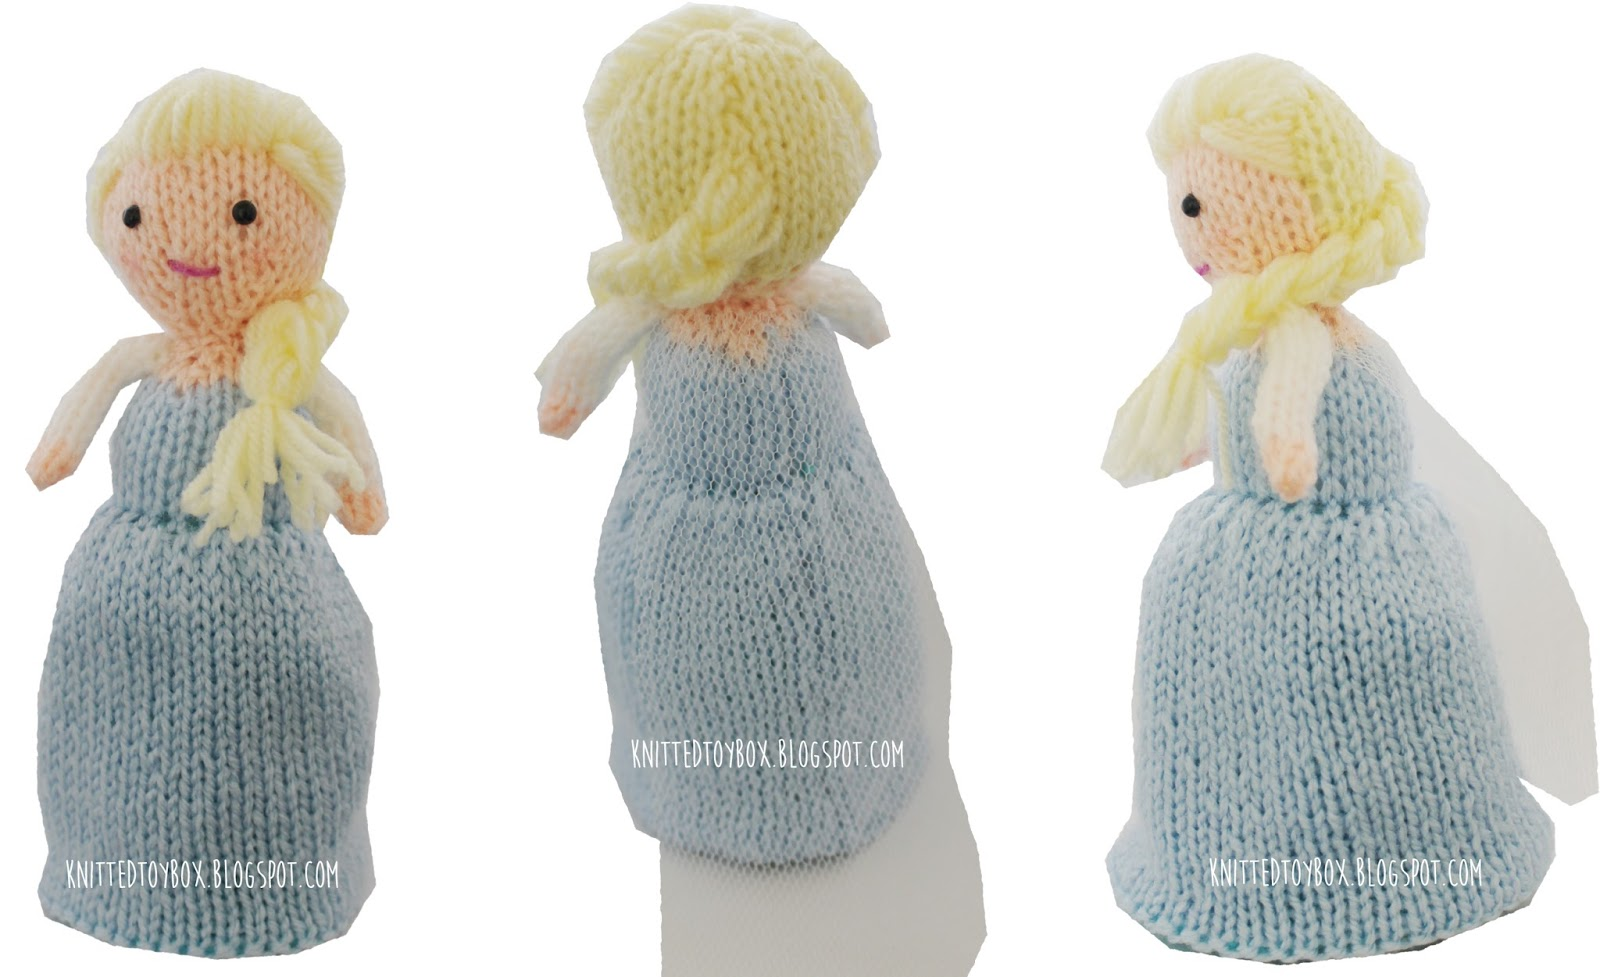 Knitting Patterns For Frozen : Knitted Toy Box: Elsa Frozen Flip Doll